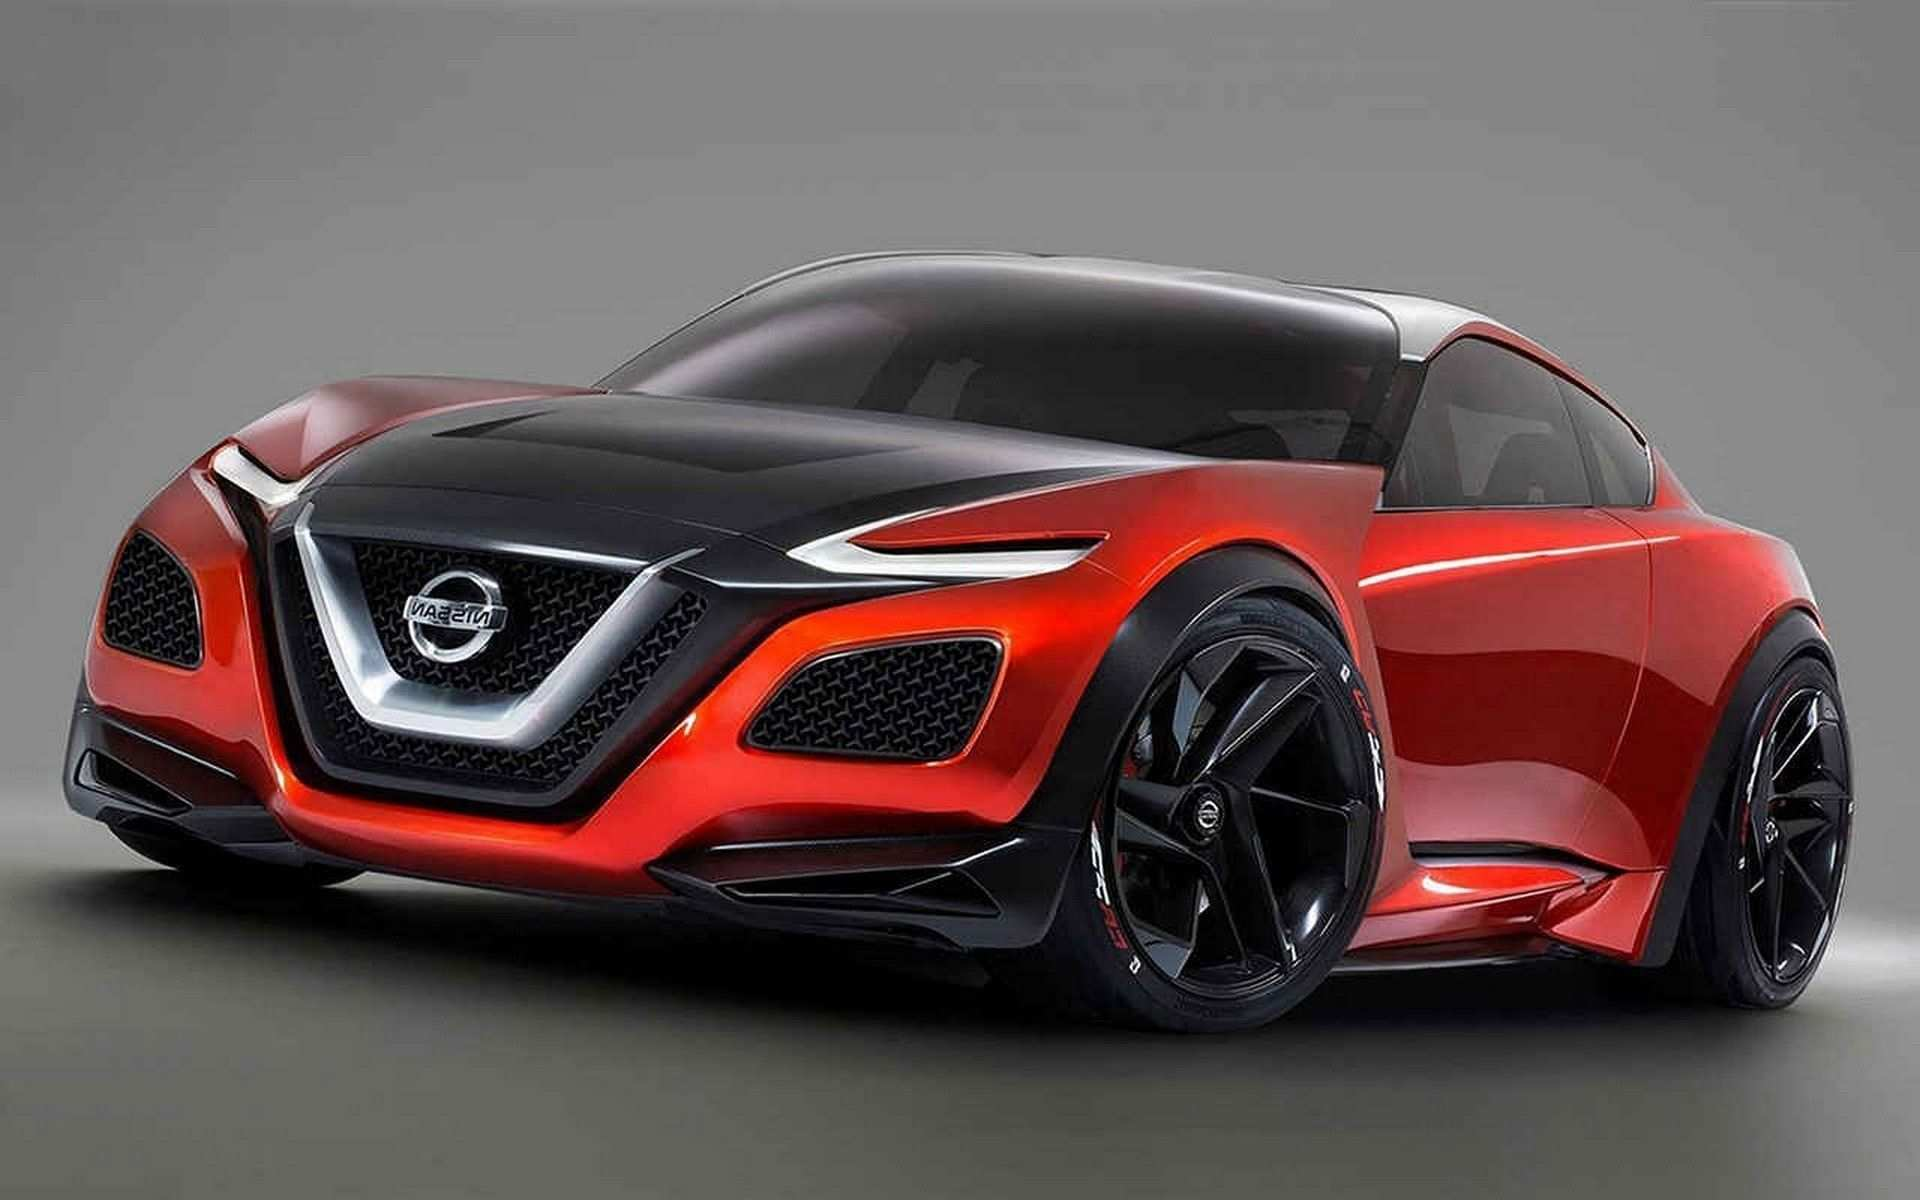 57 Best Review Nissan Z Exterior 2020 Performance by Nissan Z Exterior 2020